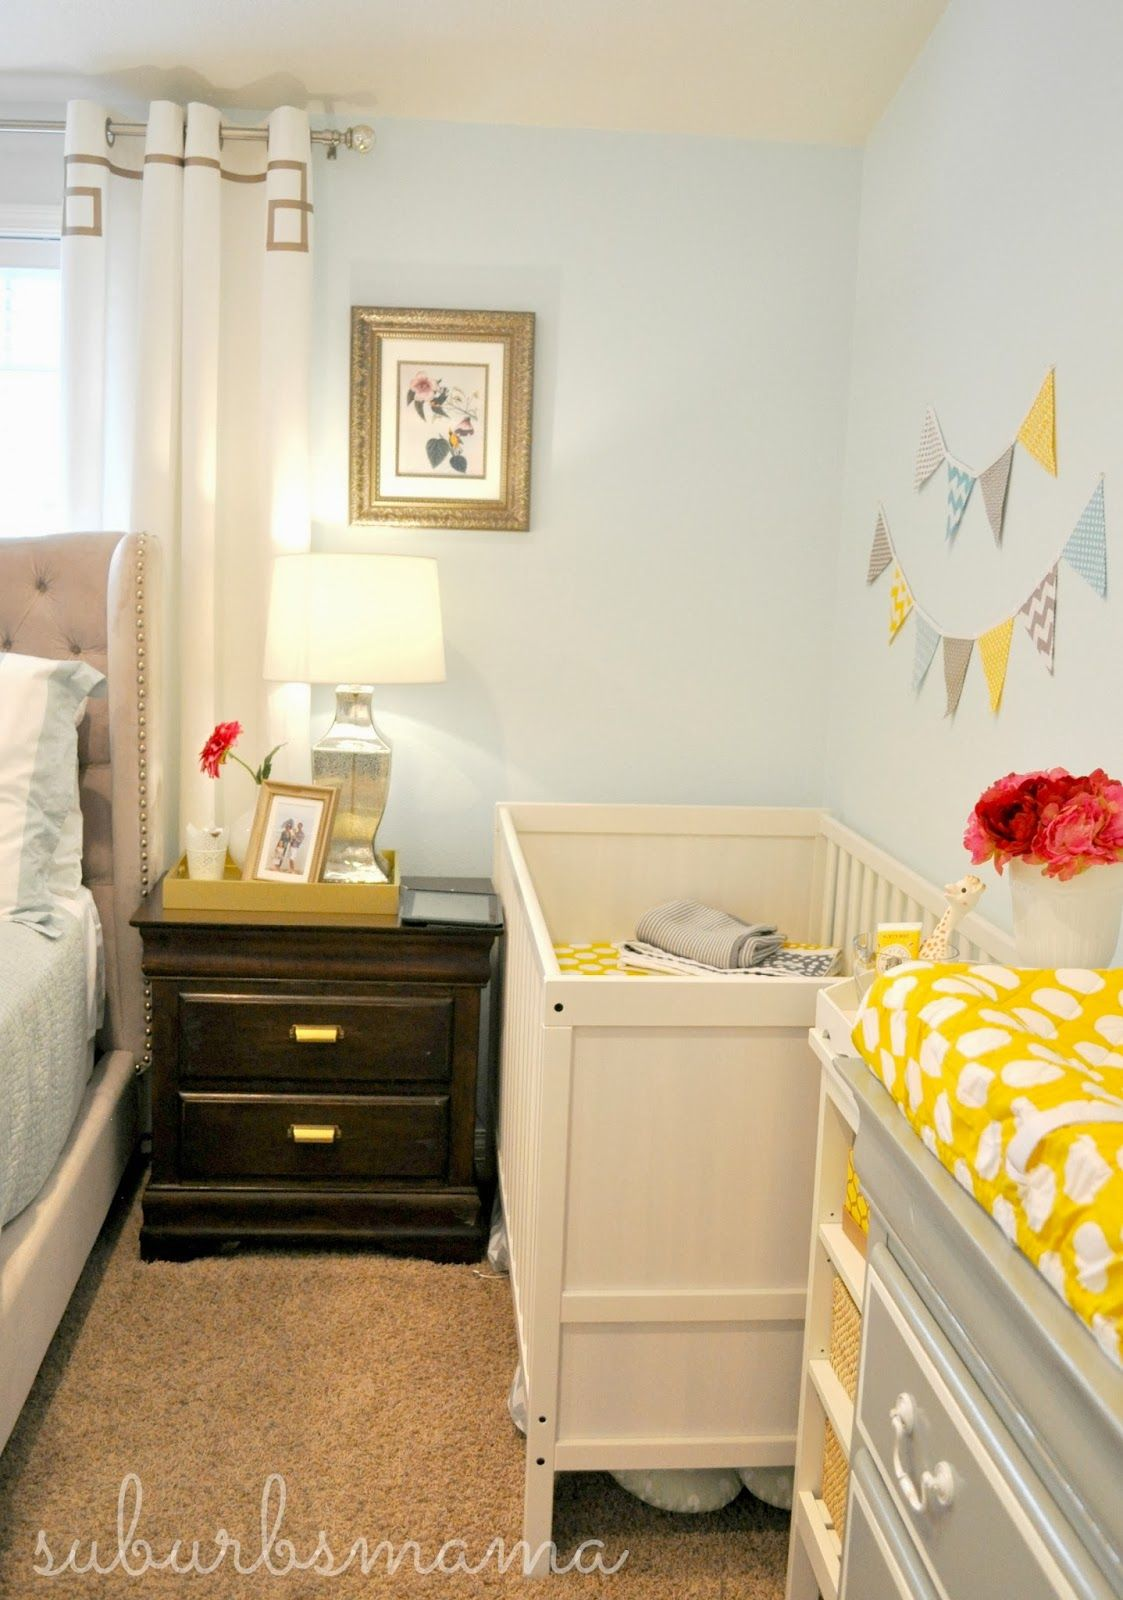 Suburbs Mama: Nursery in Master Bedroom | Kindergarten Science ...